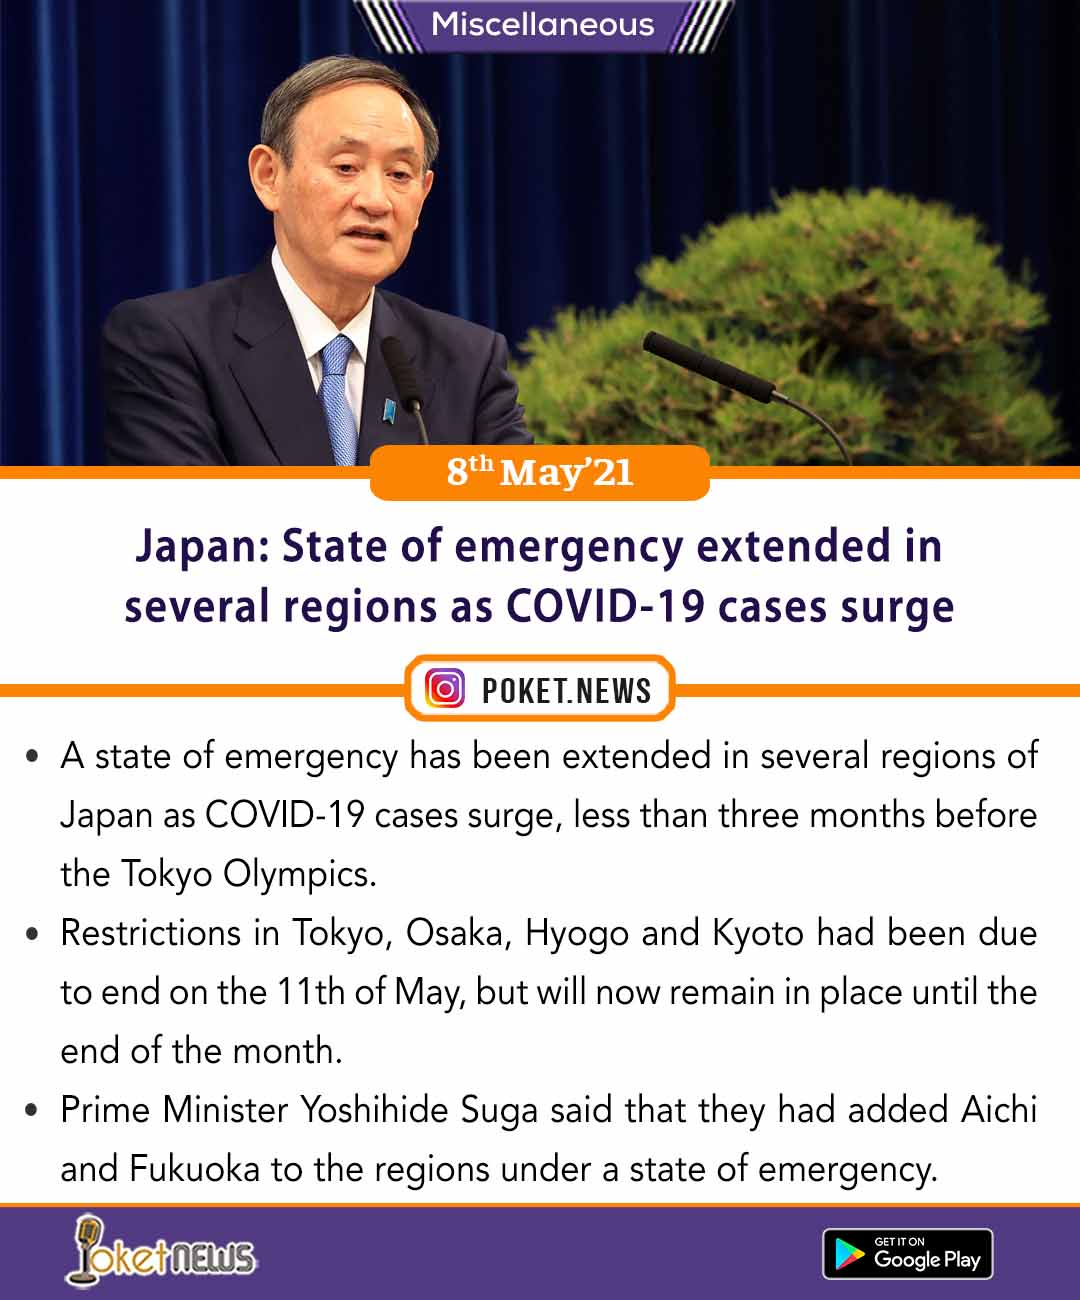 Japan: State of emergency extended in several regions as COVID-19 cases surge